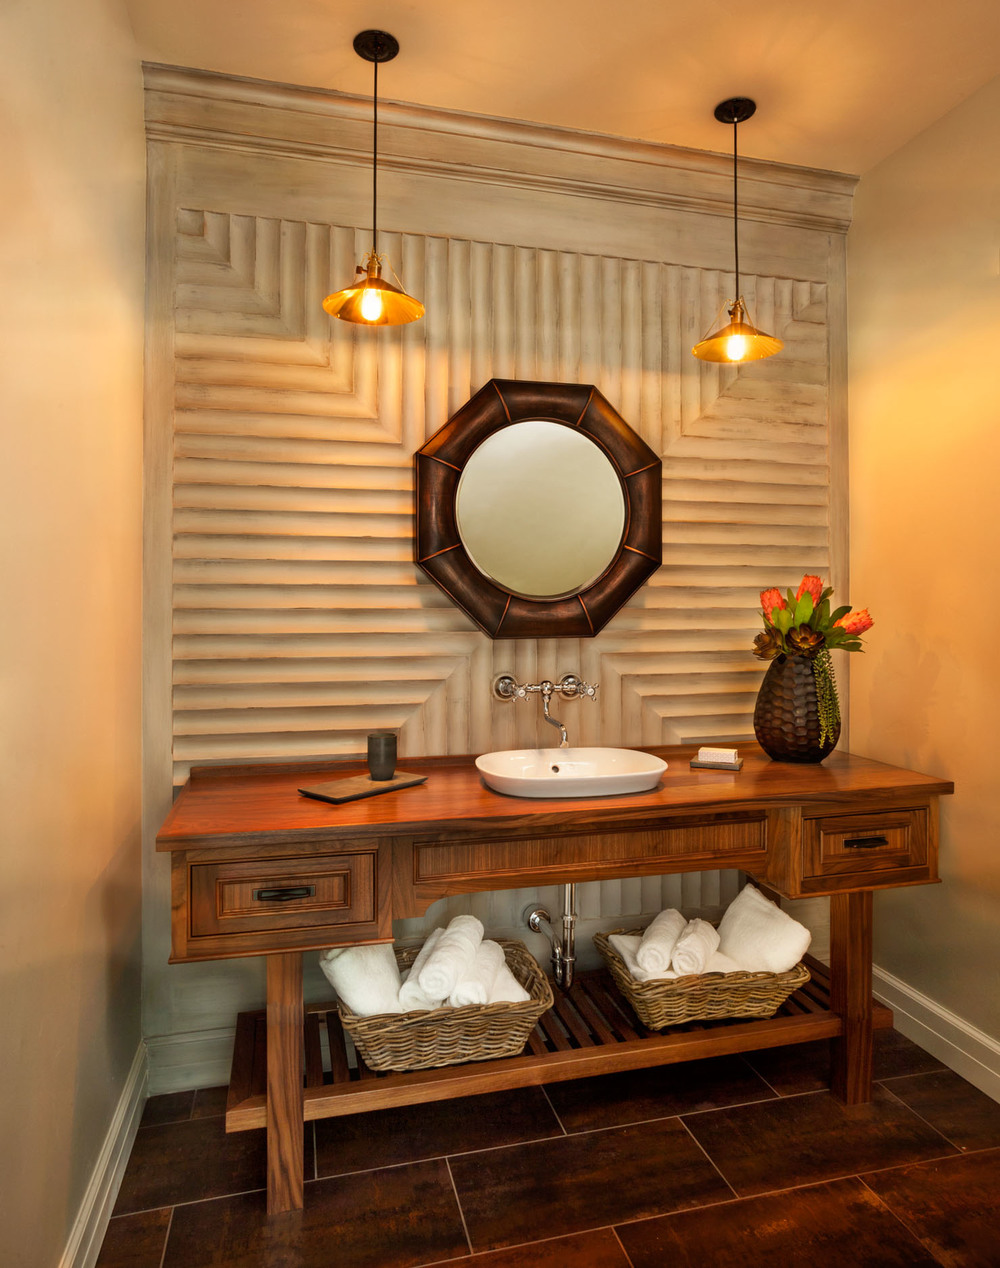 American Spirit Powder Room Vanity